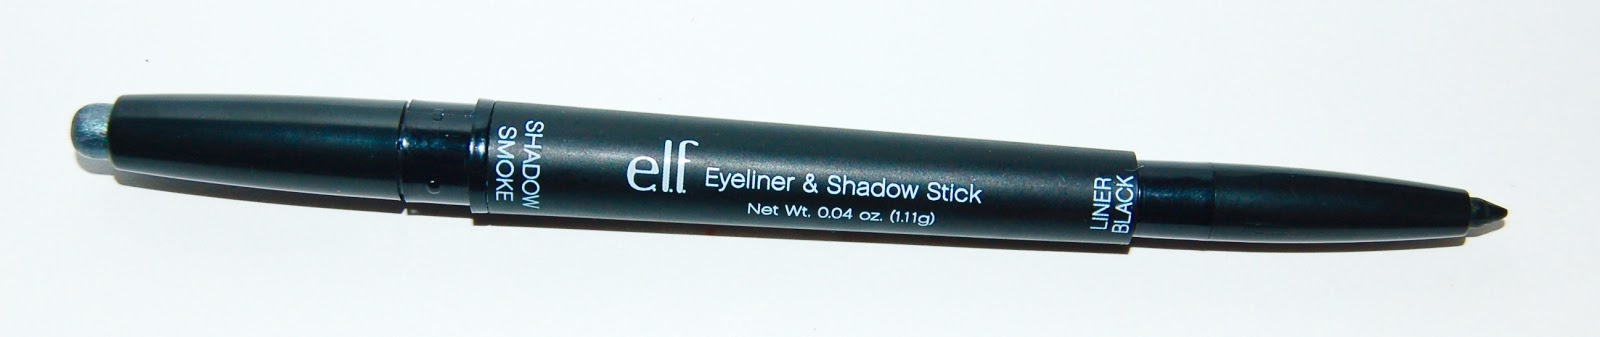 Elf Eyeliner & Shadow Stick